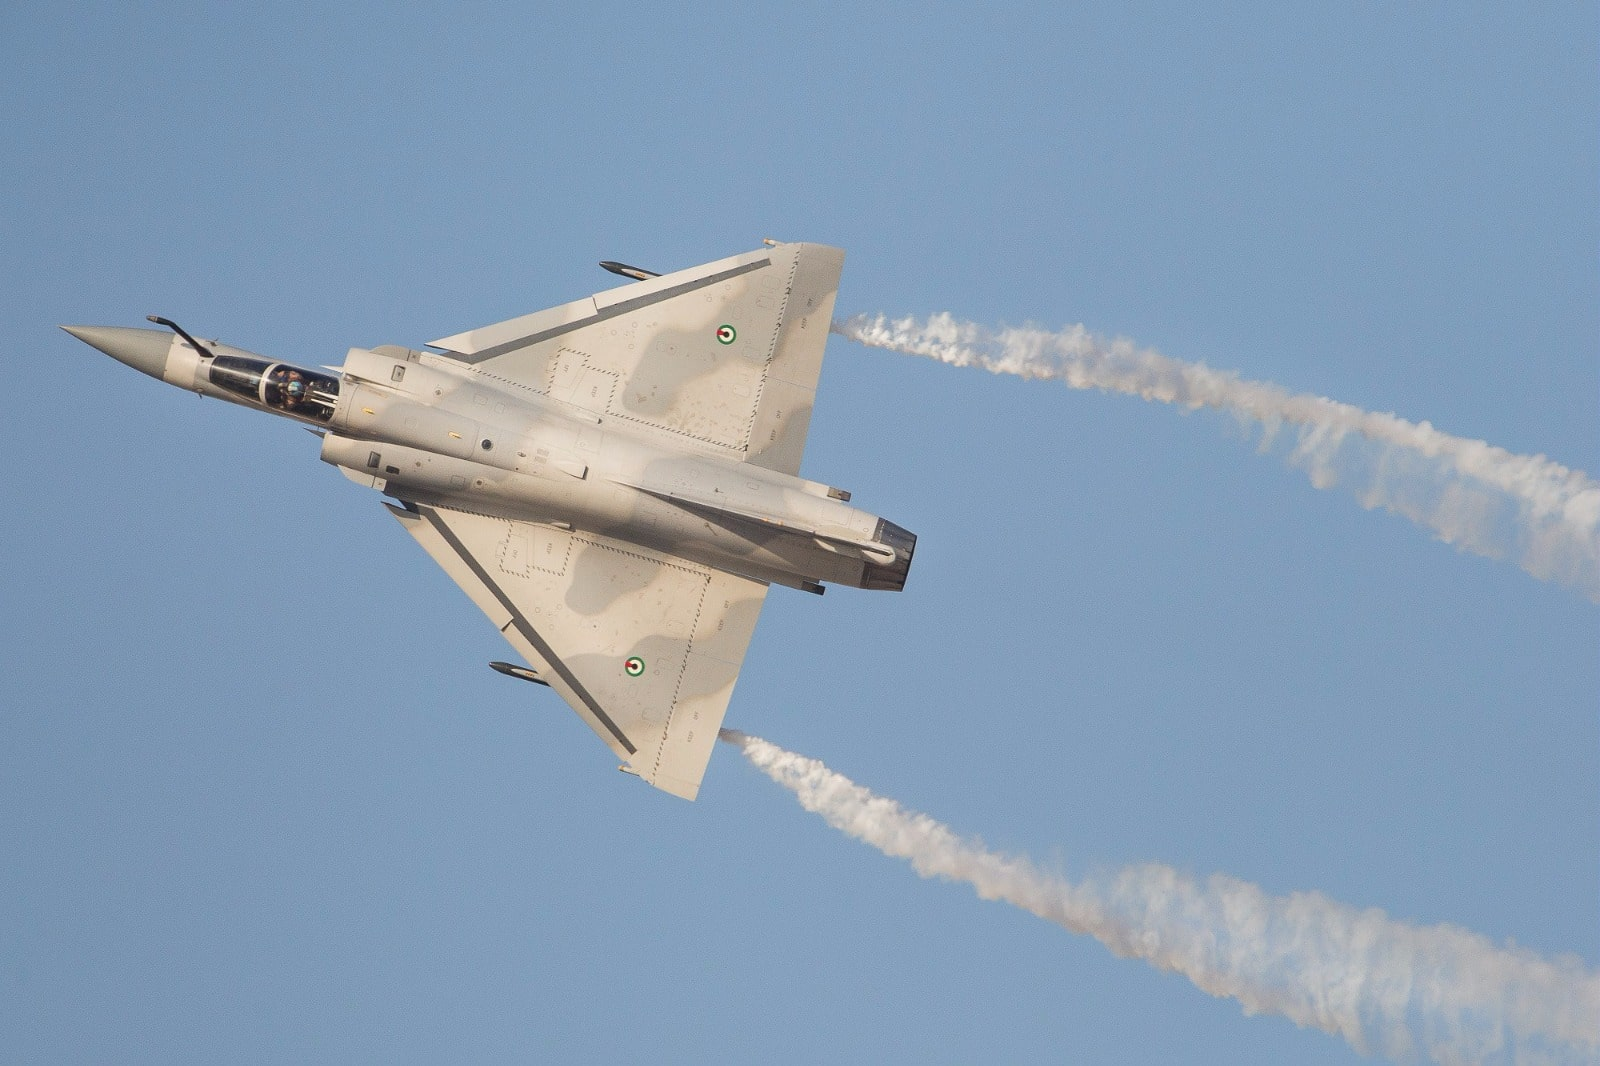 Dassault to modernize UAE's Mirage fleet for a reported $350M